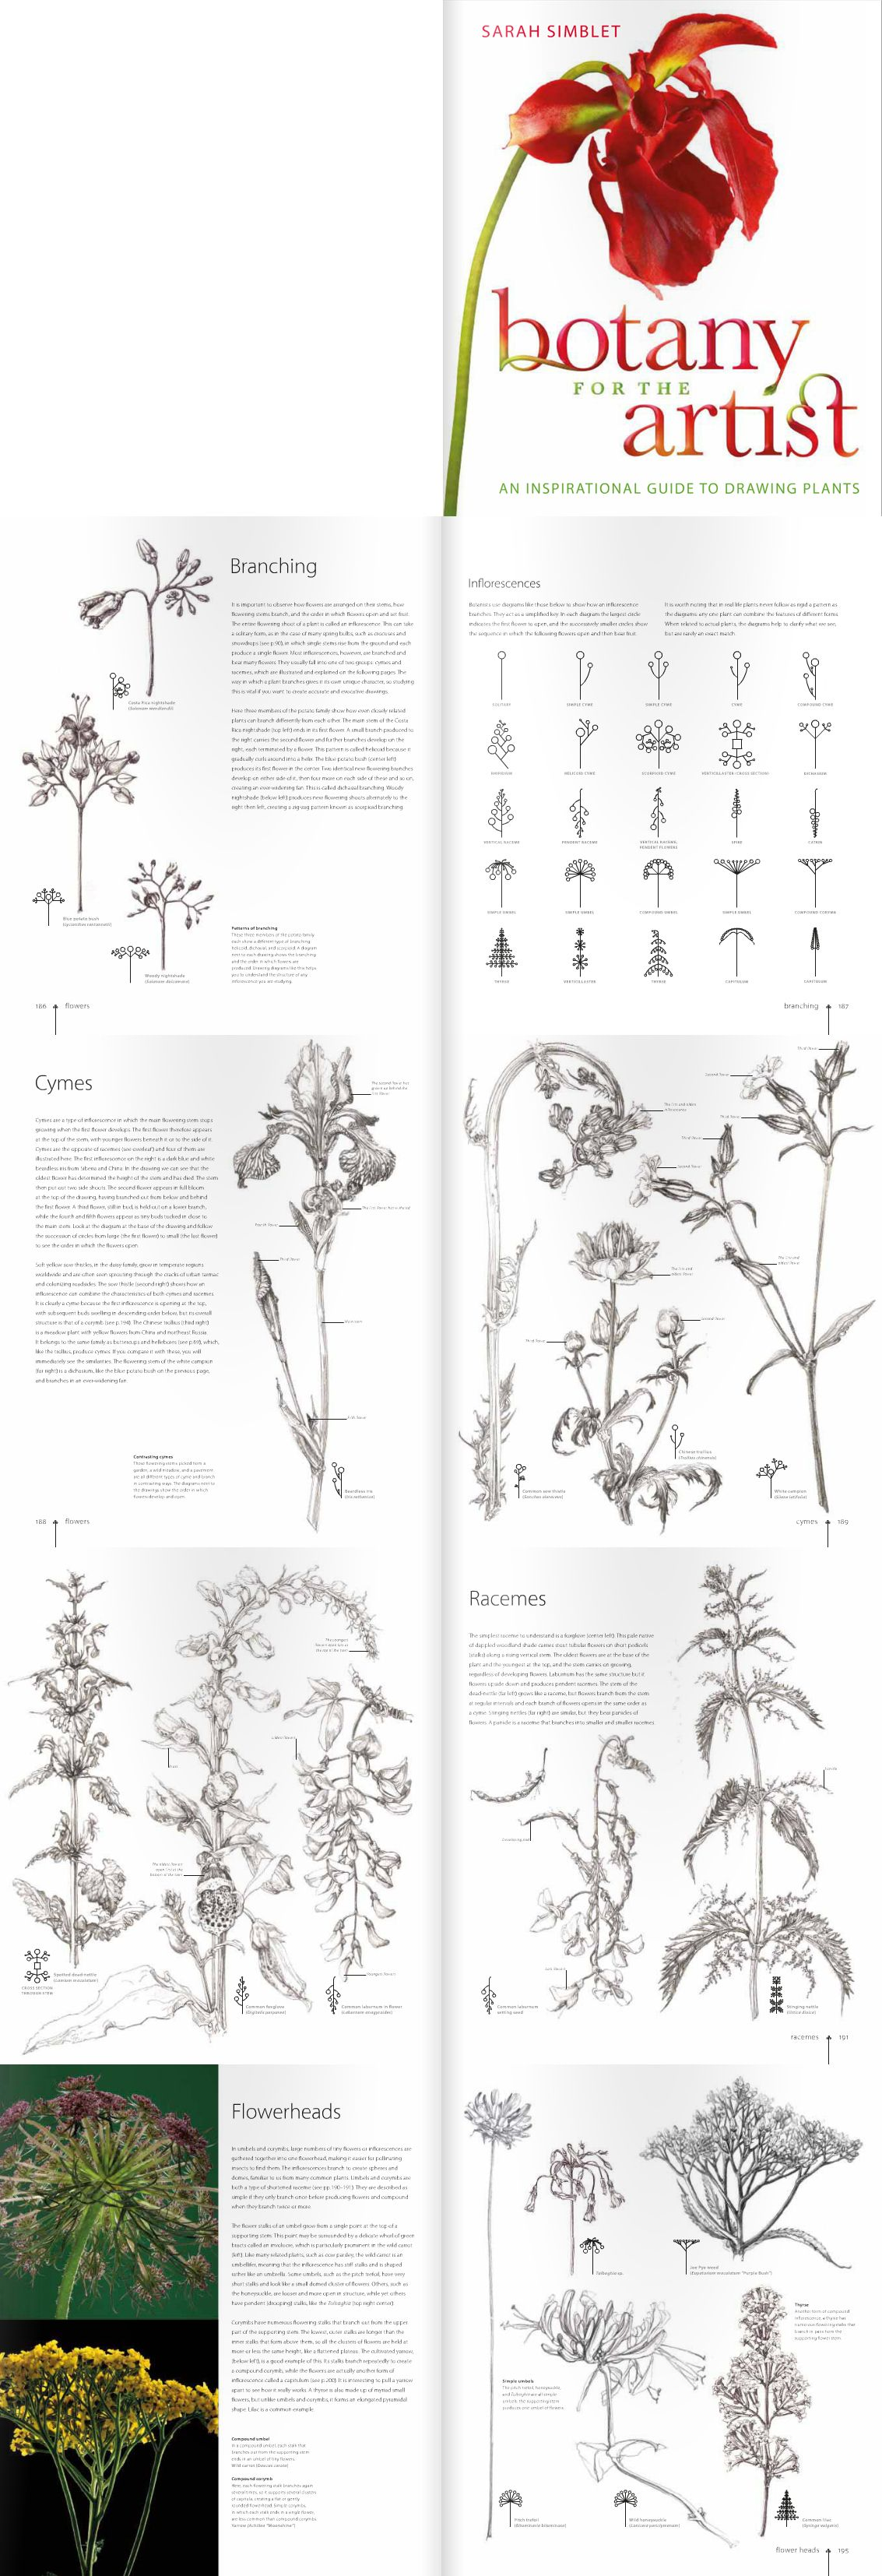 Saran Simblet. Botany for the artist. Branching #Sarah #Simblet ...